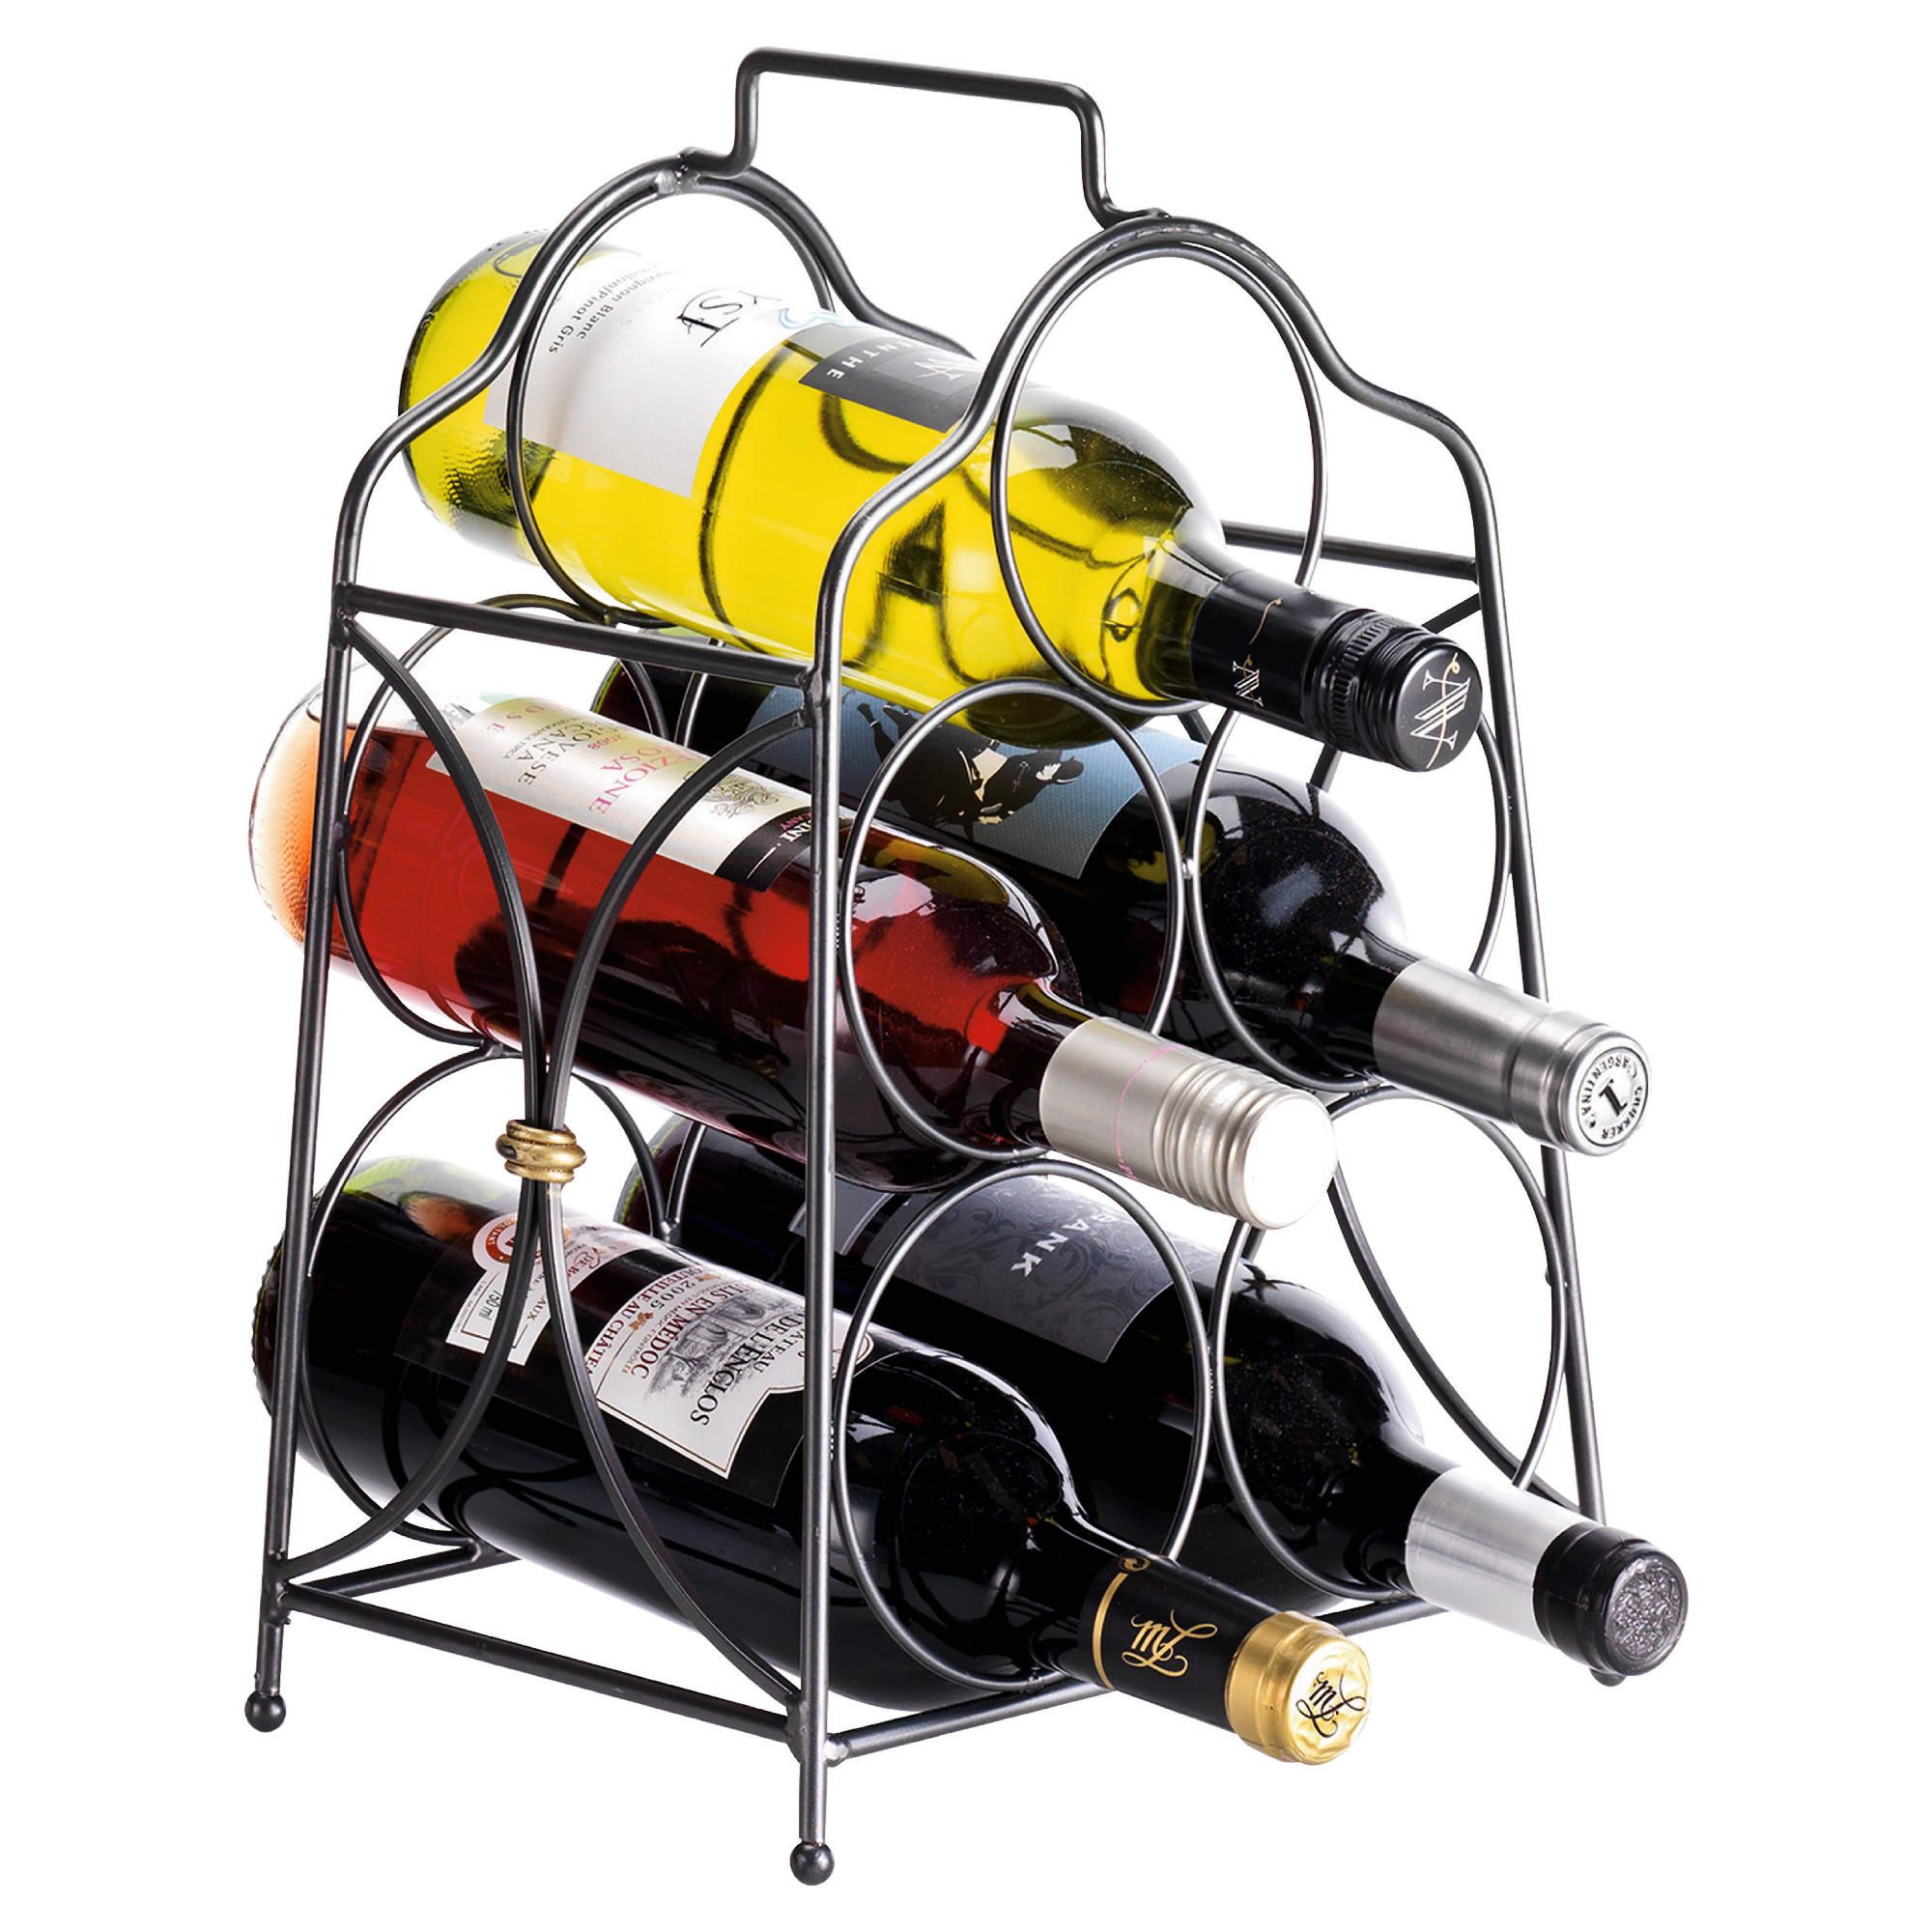 Castello 5 Bottle Wine rack, Black